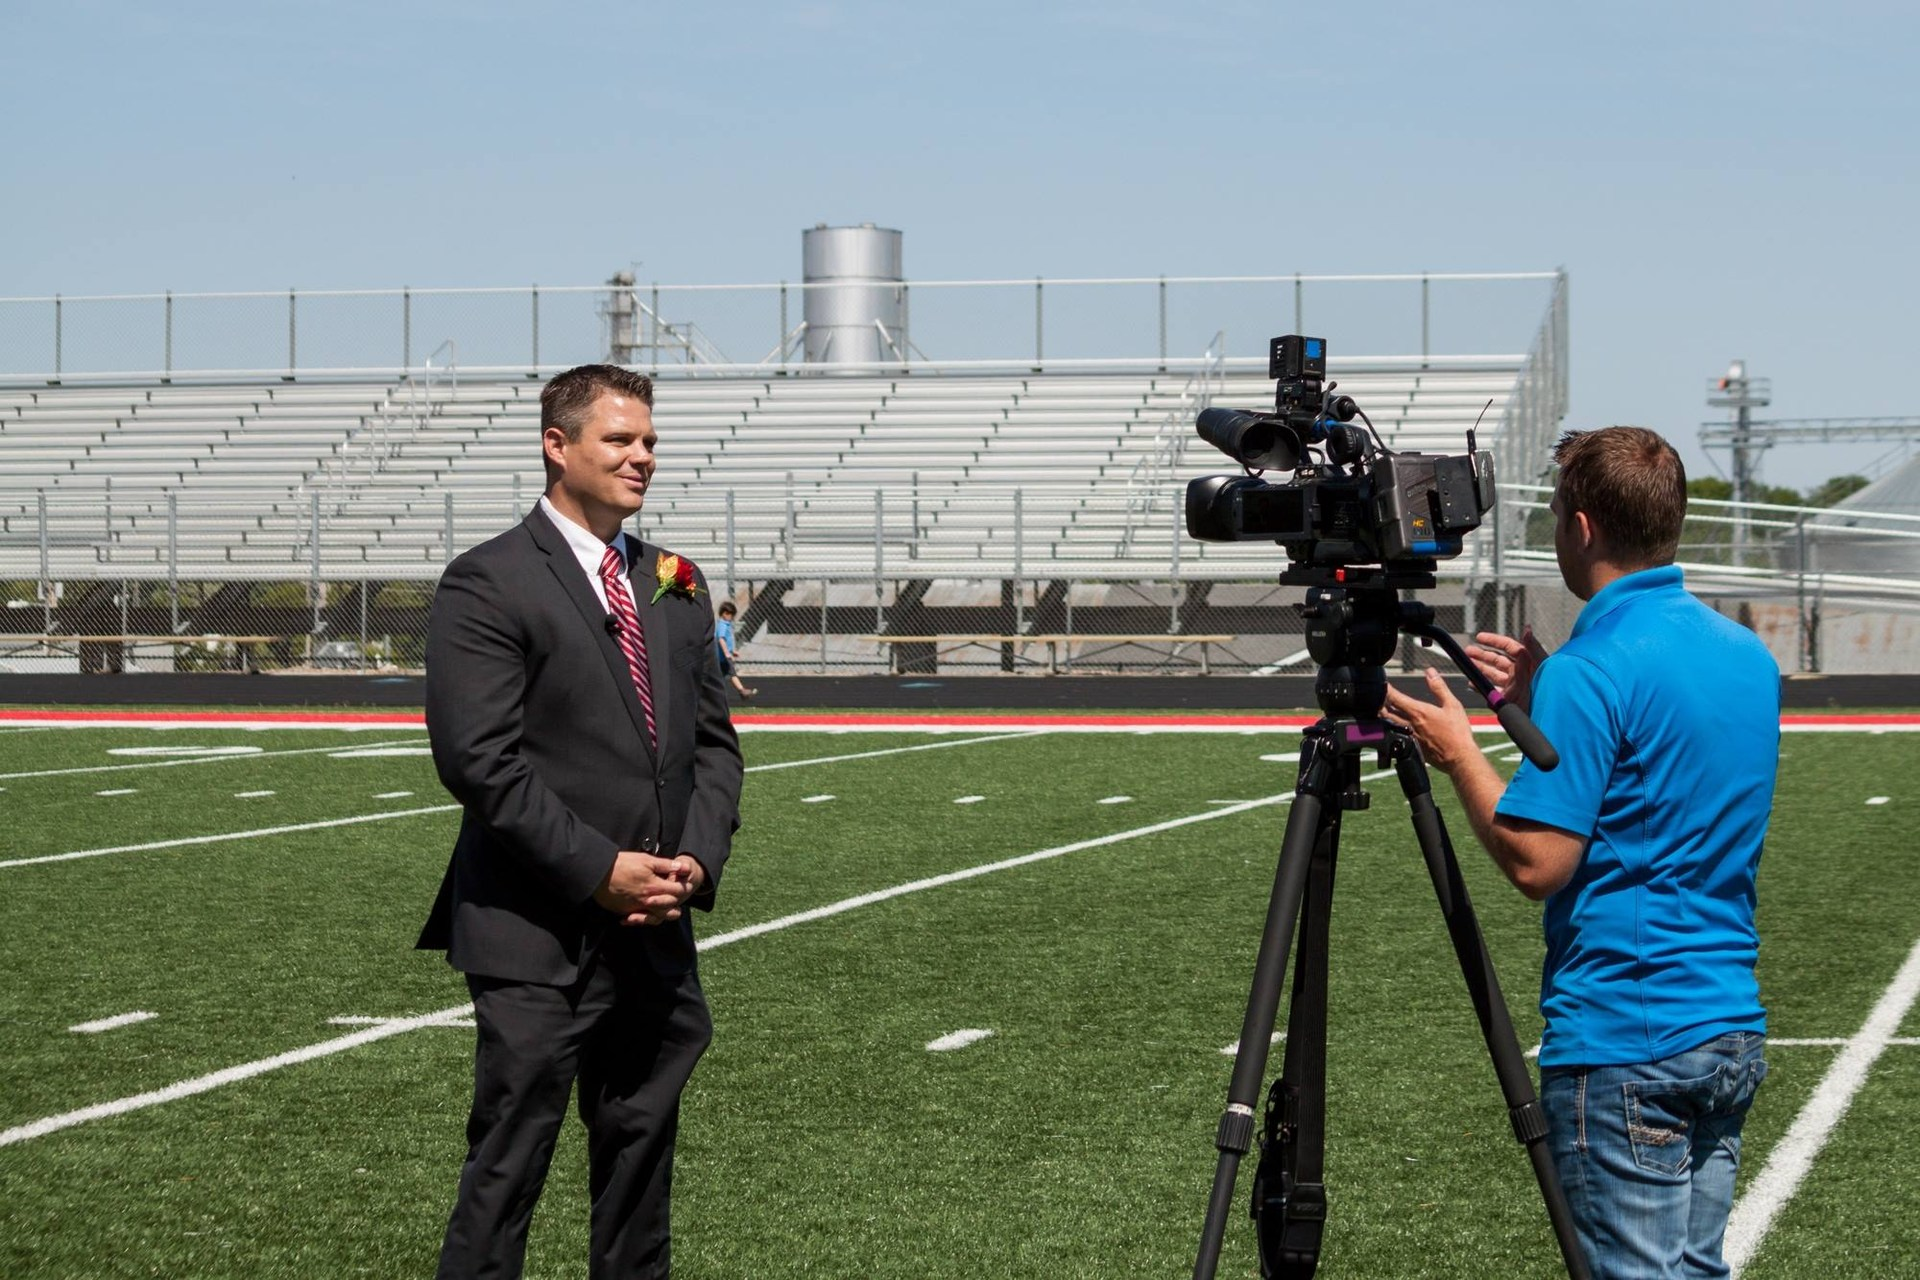 Blackmore interview with  KCCI